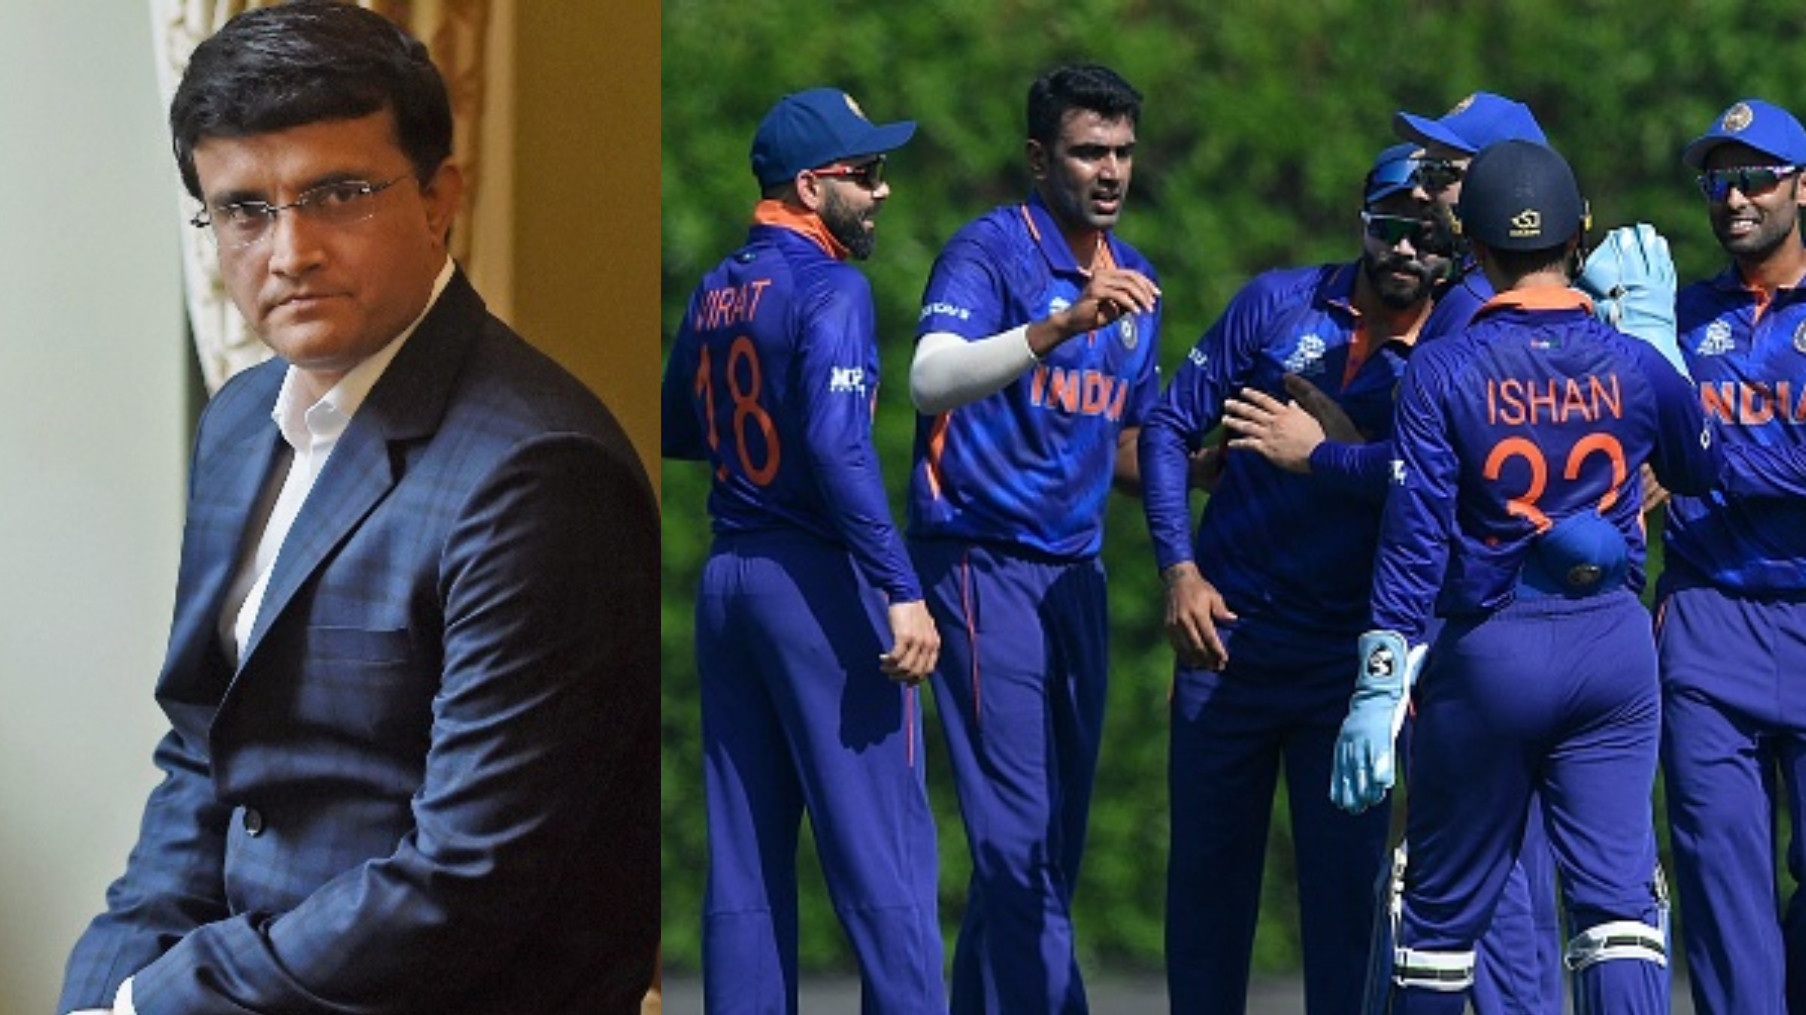 BCCI president Sourav Ganguly says India will always be a contender to win T20 World Cup